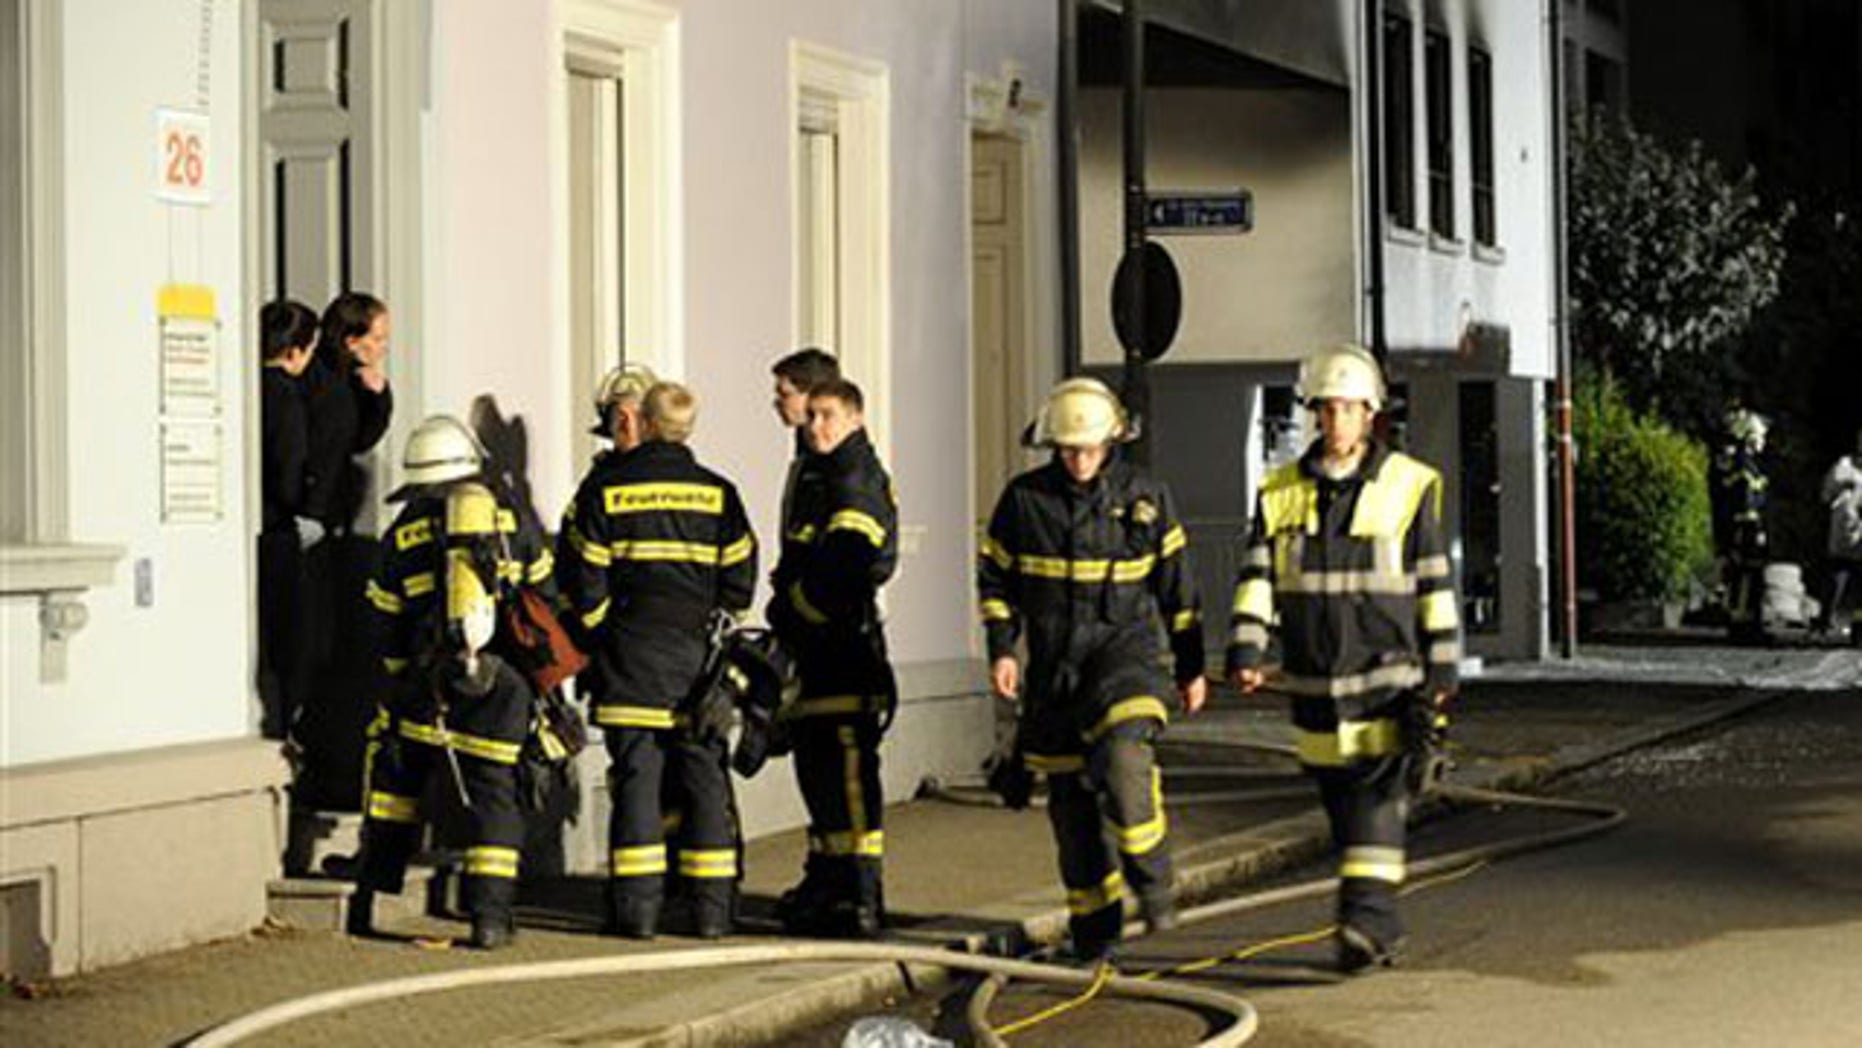 Sept. 19: Firefighters stand in front of a house where an explosion occured in Loerrach, southern Germany.